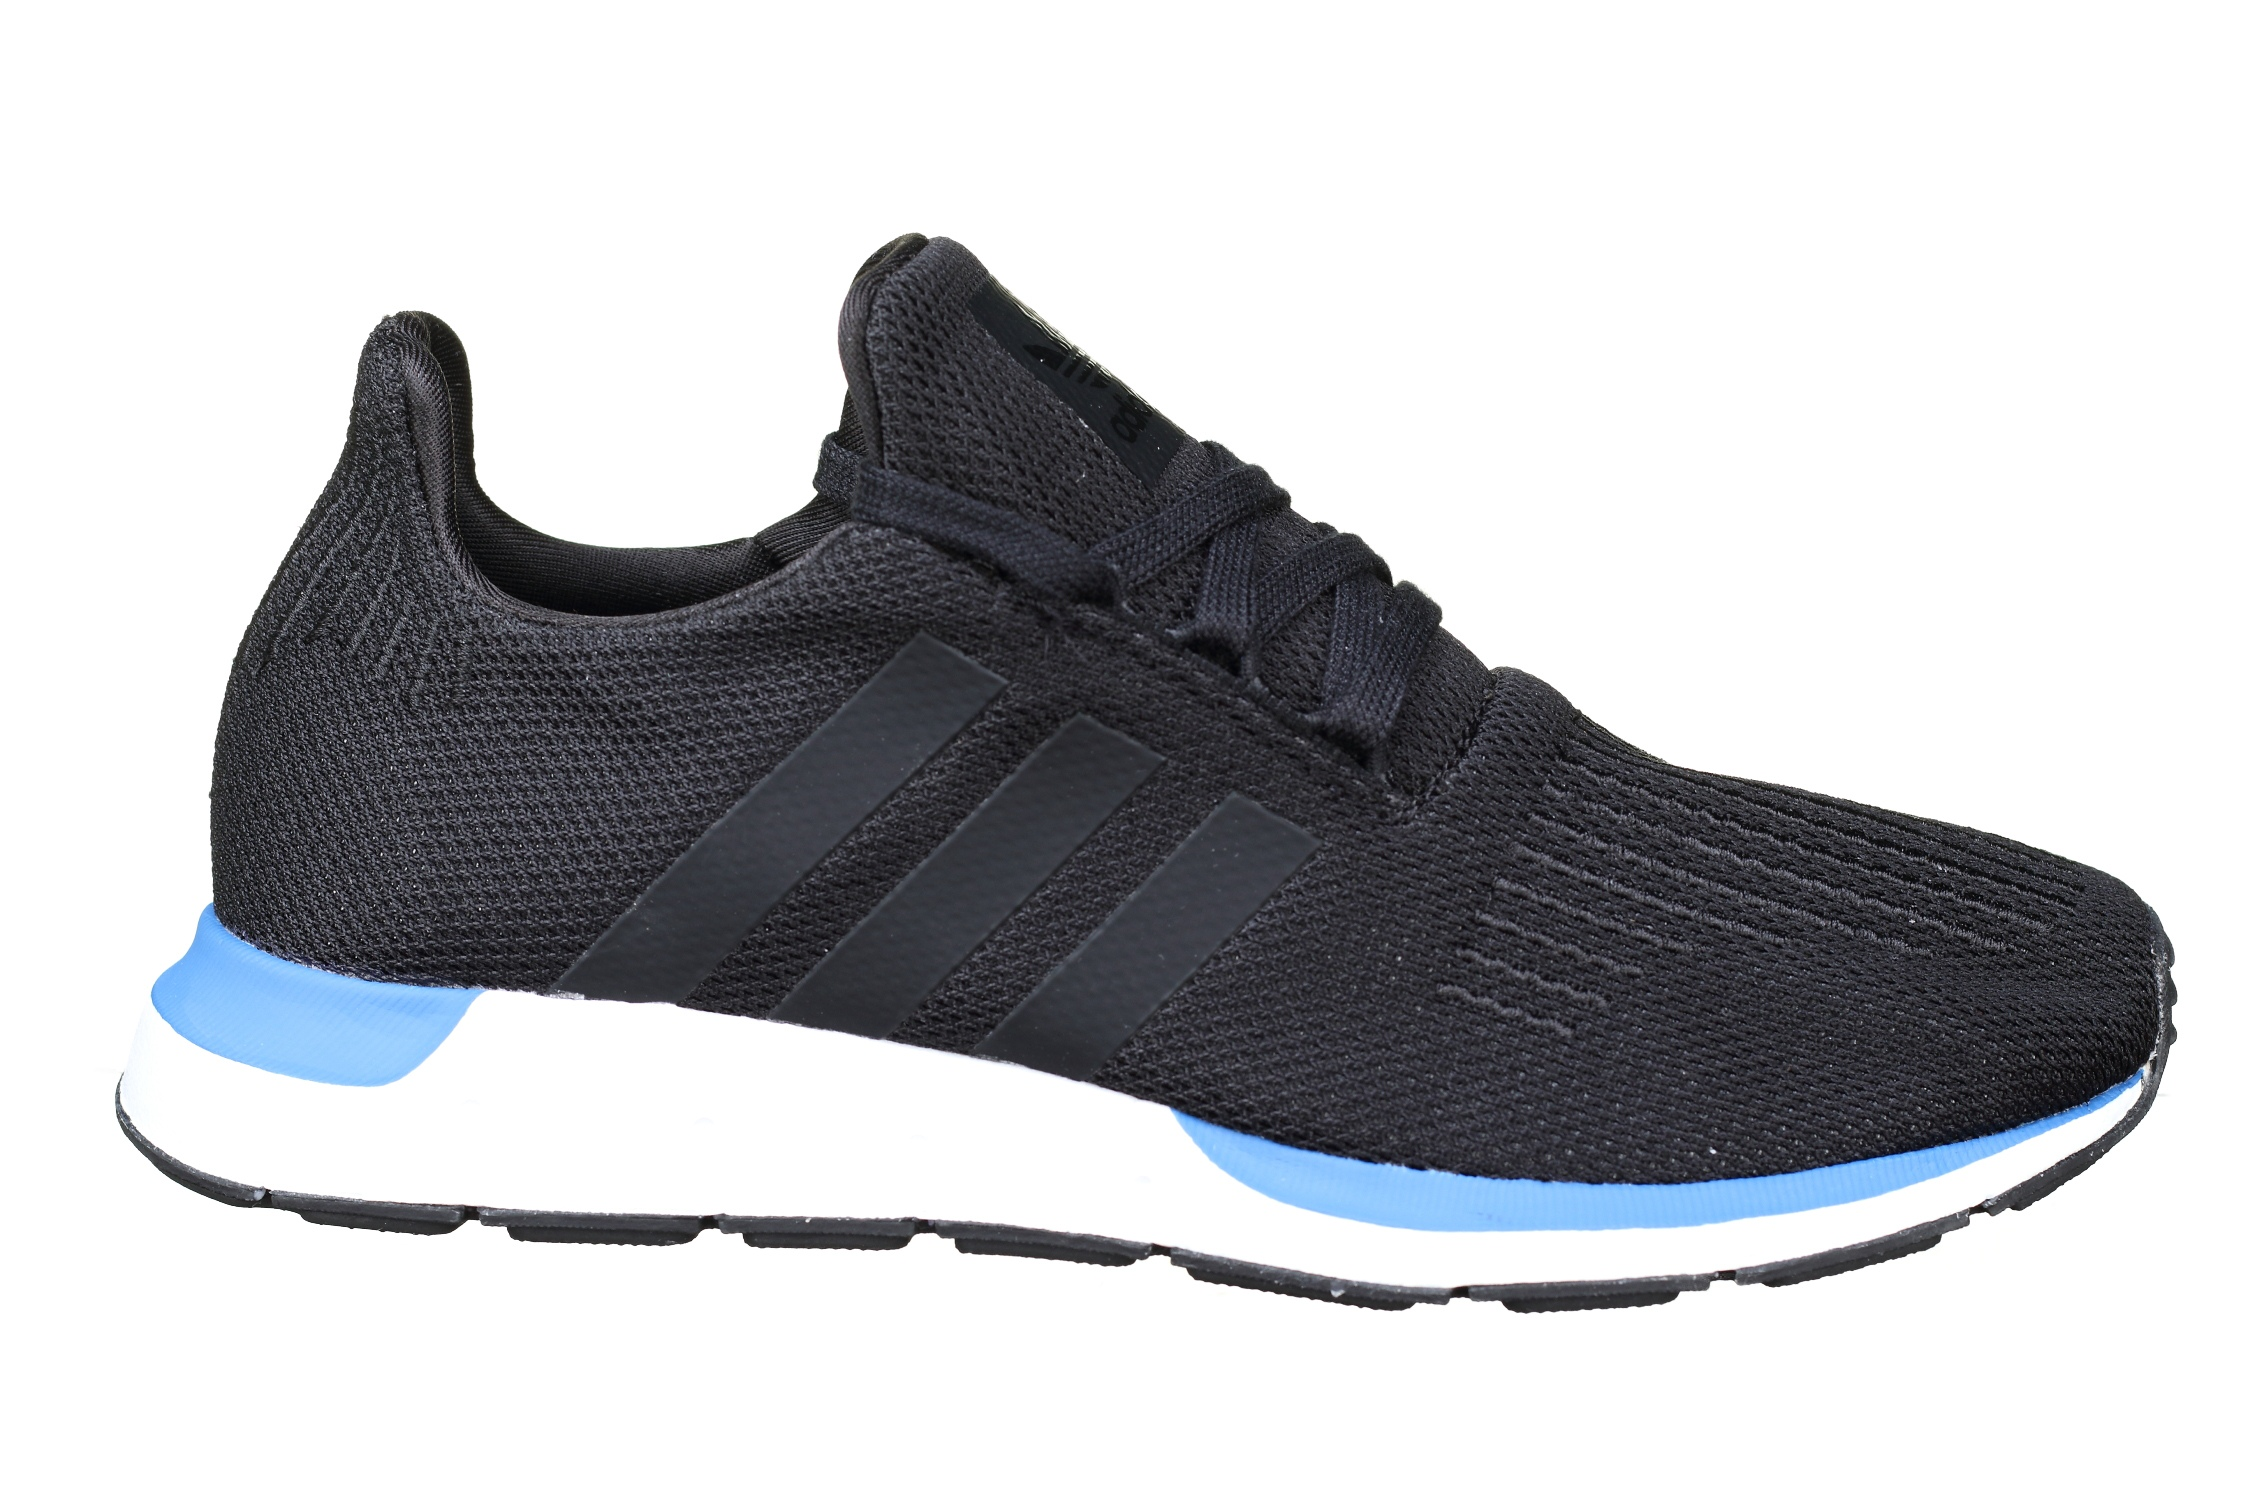 https://www.leadermode.com/180257/adidas-swift-run-j-ee7025-noir.jpg